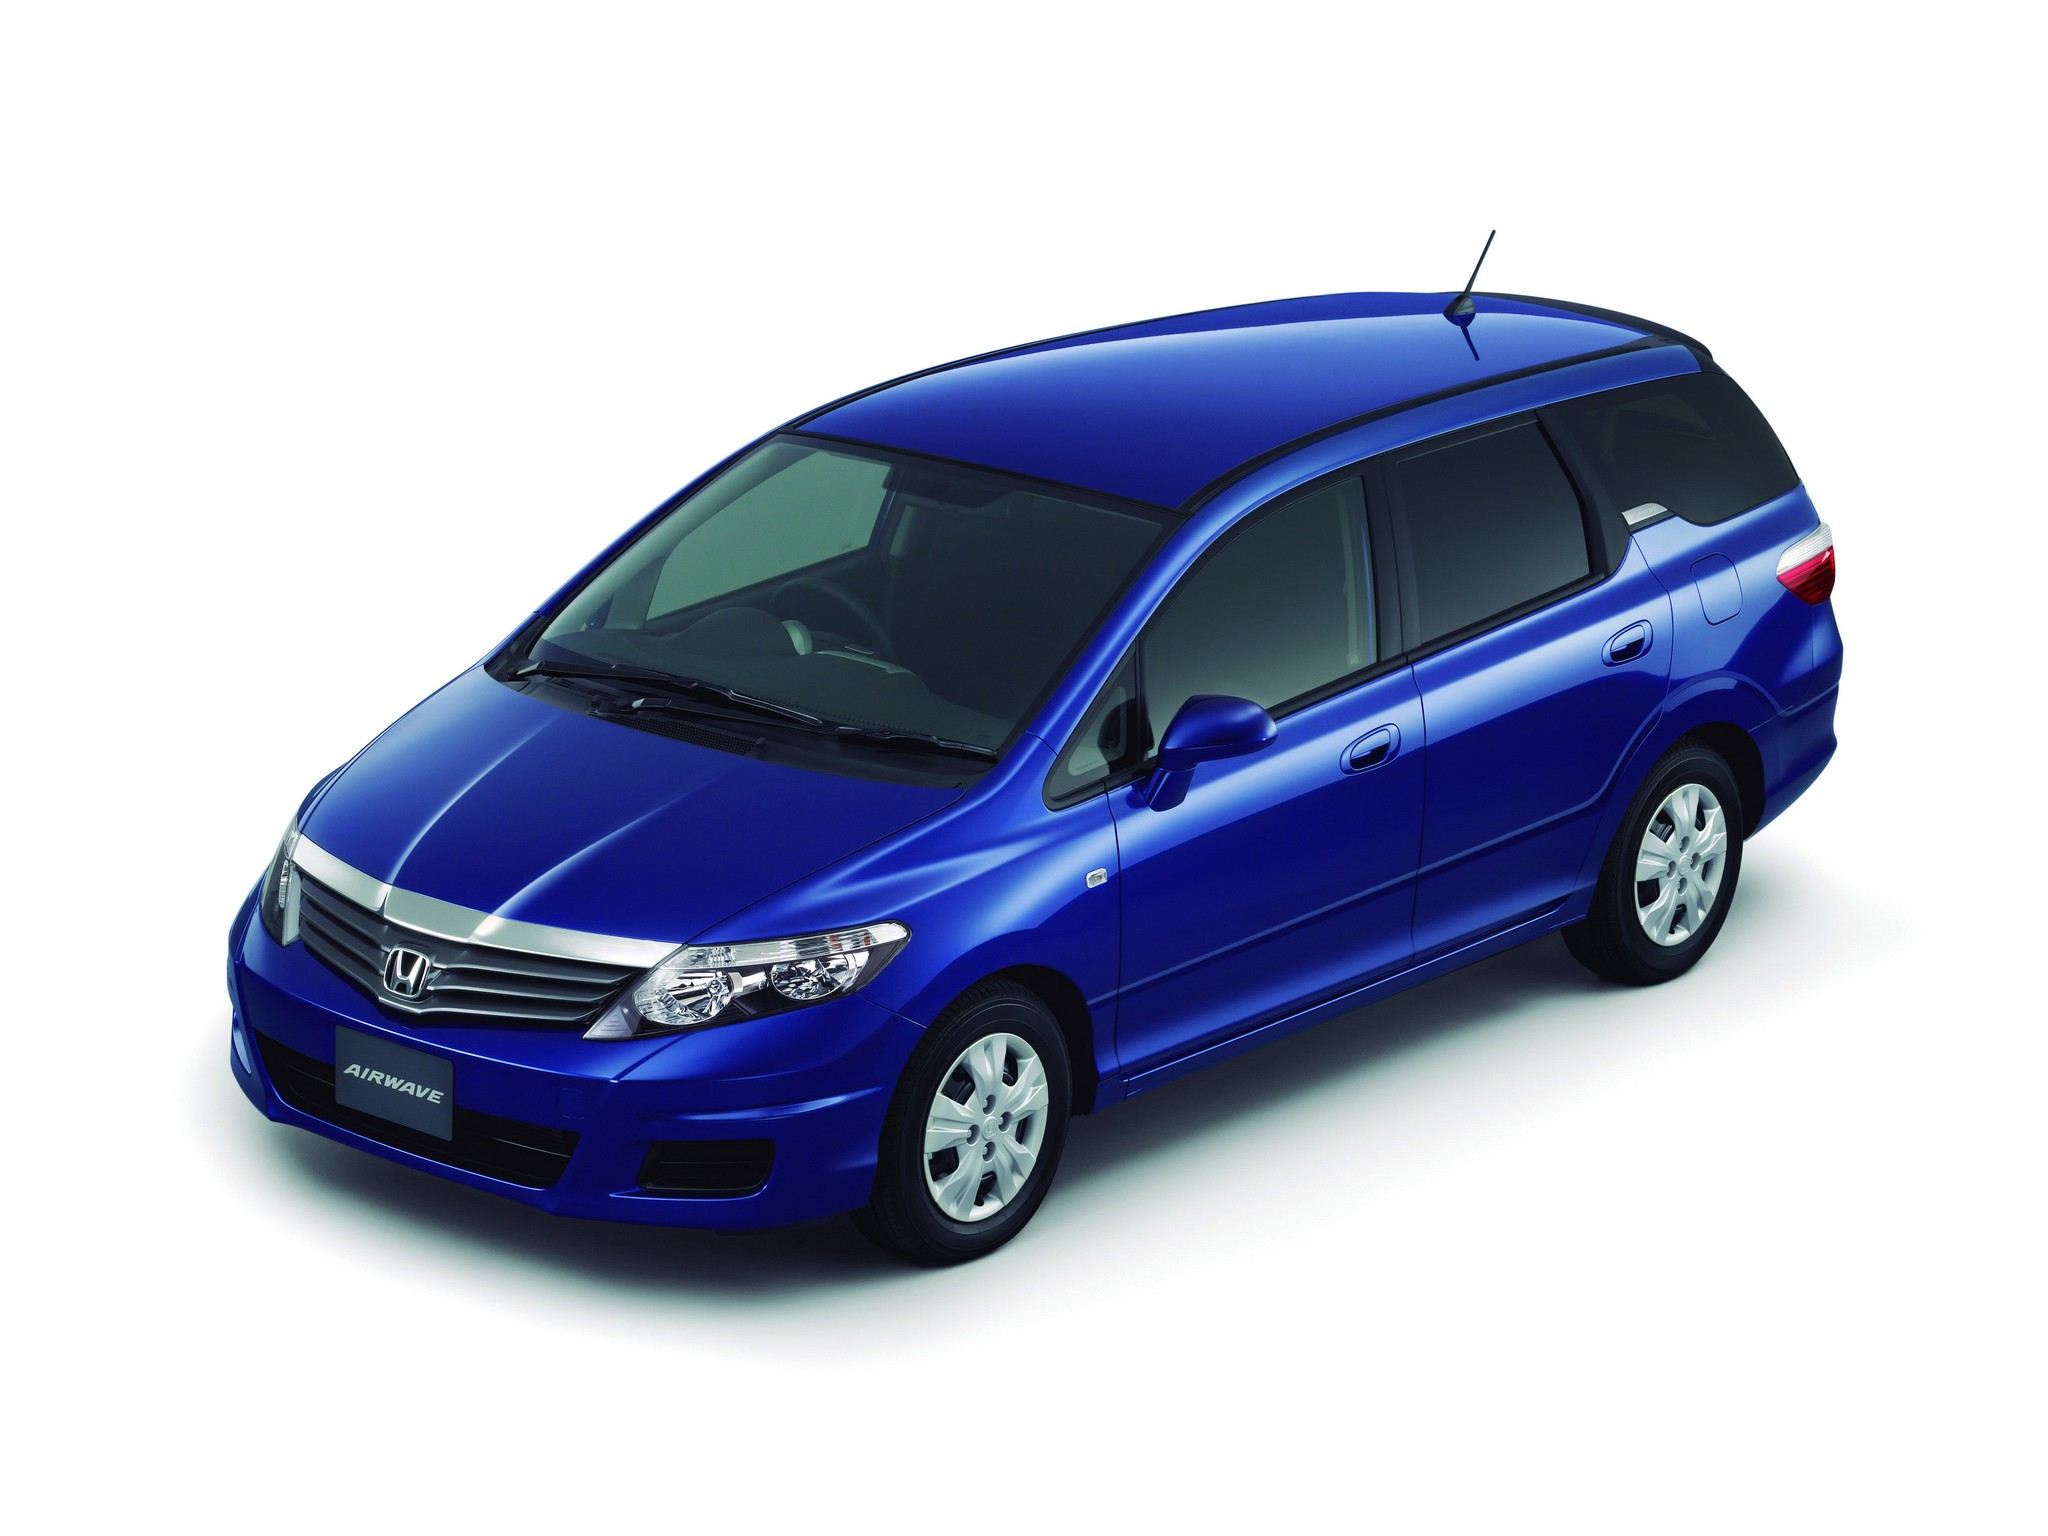 Honda Airwave: description and specifications 16